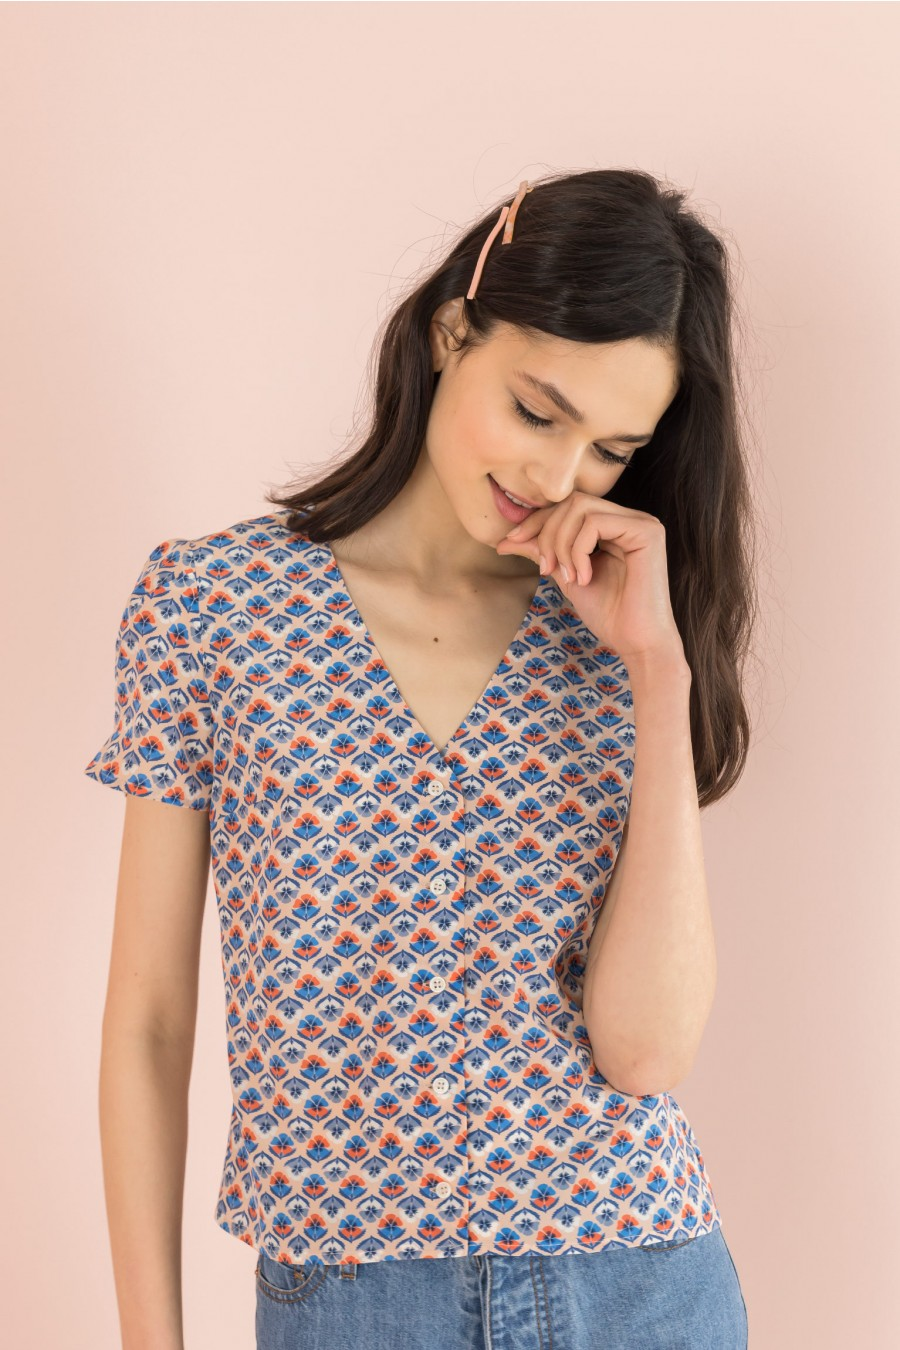 silk shirt with short sleeves